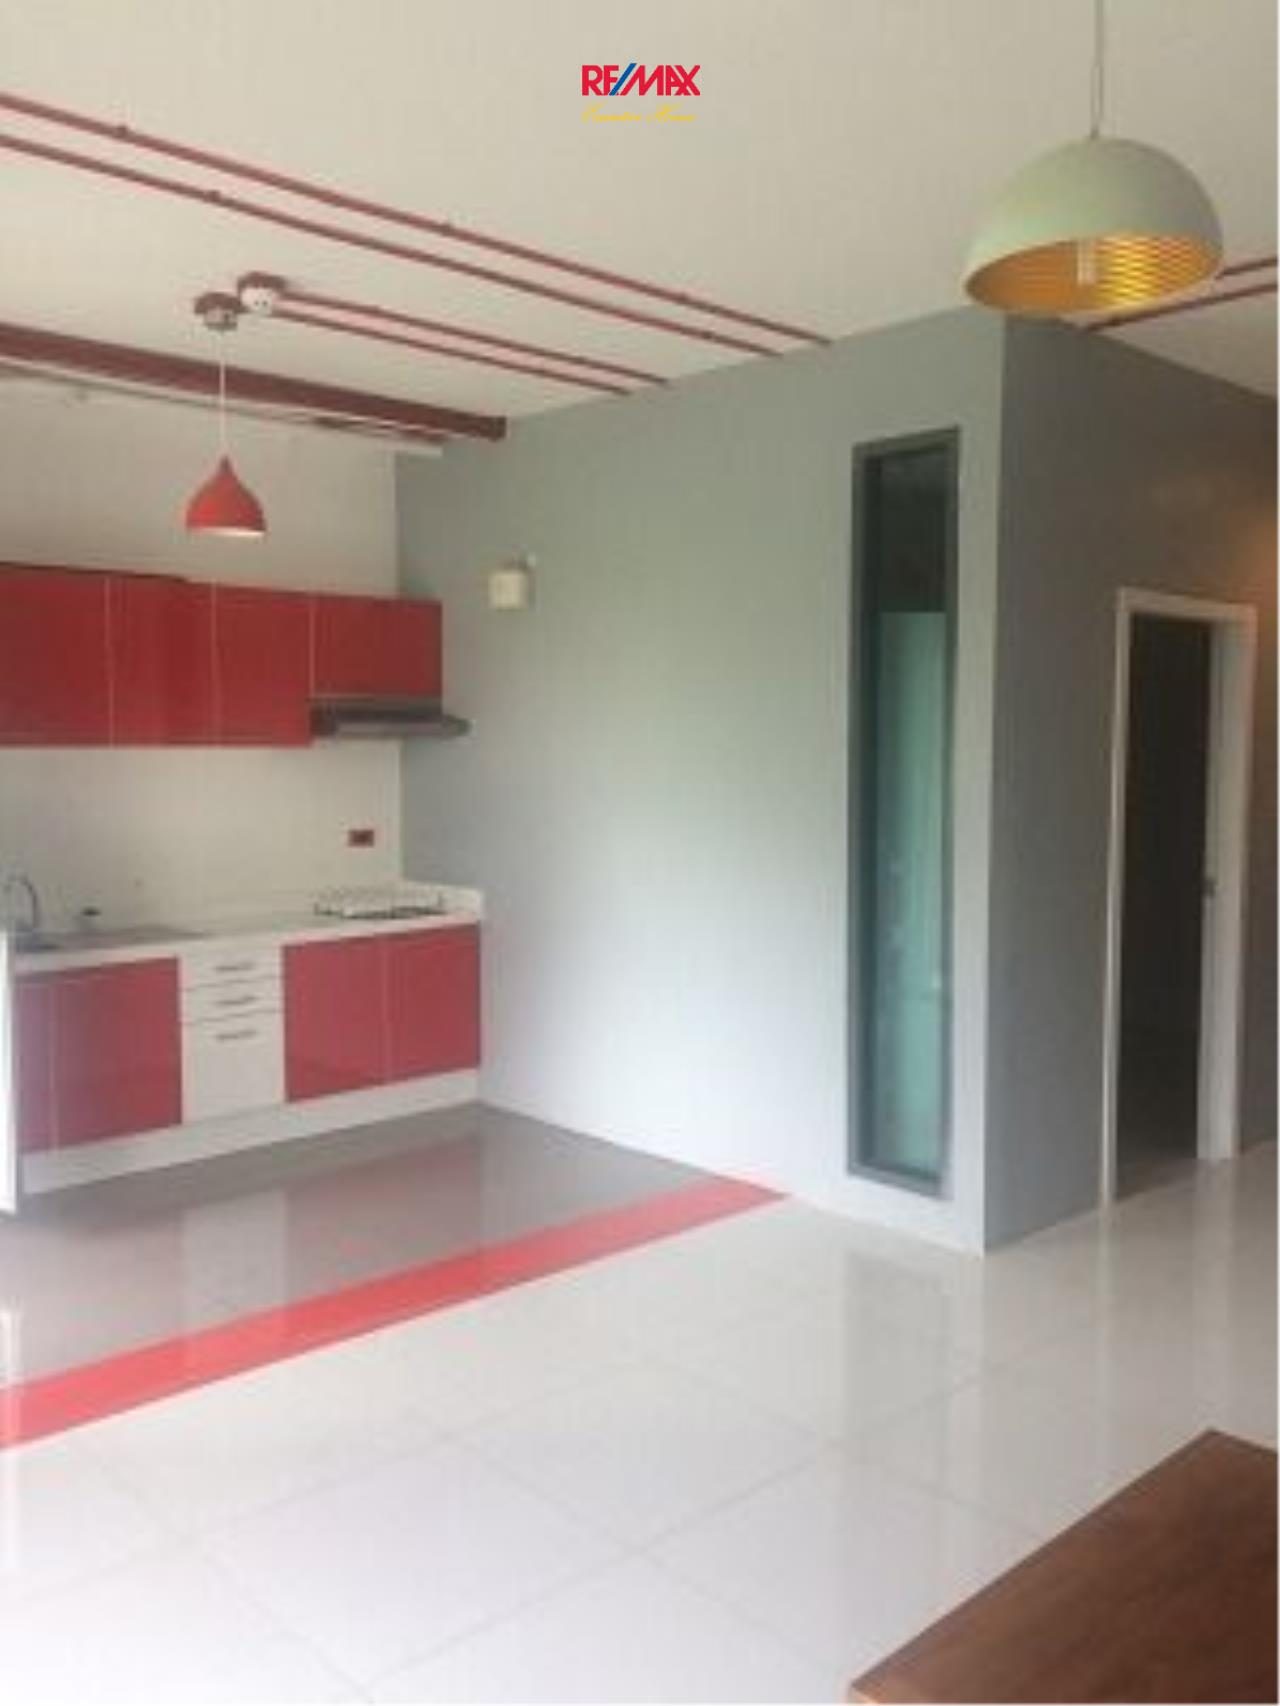 RE/MAX Executive Homes Agency's Office Space for Rent in Apai Loft 6